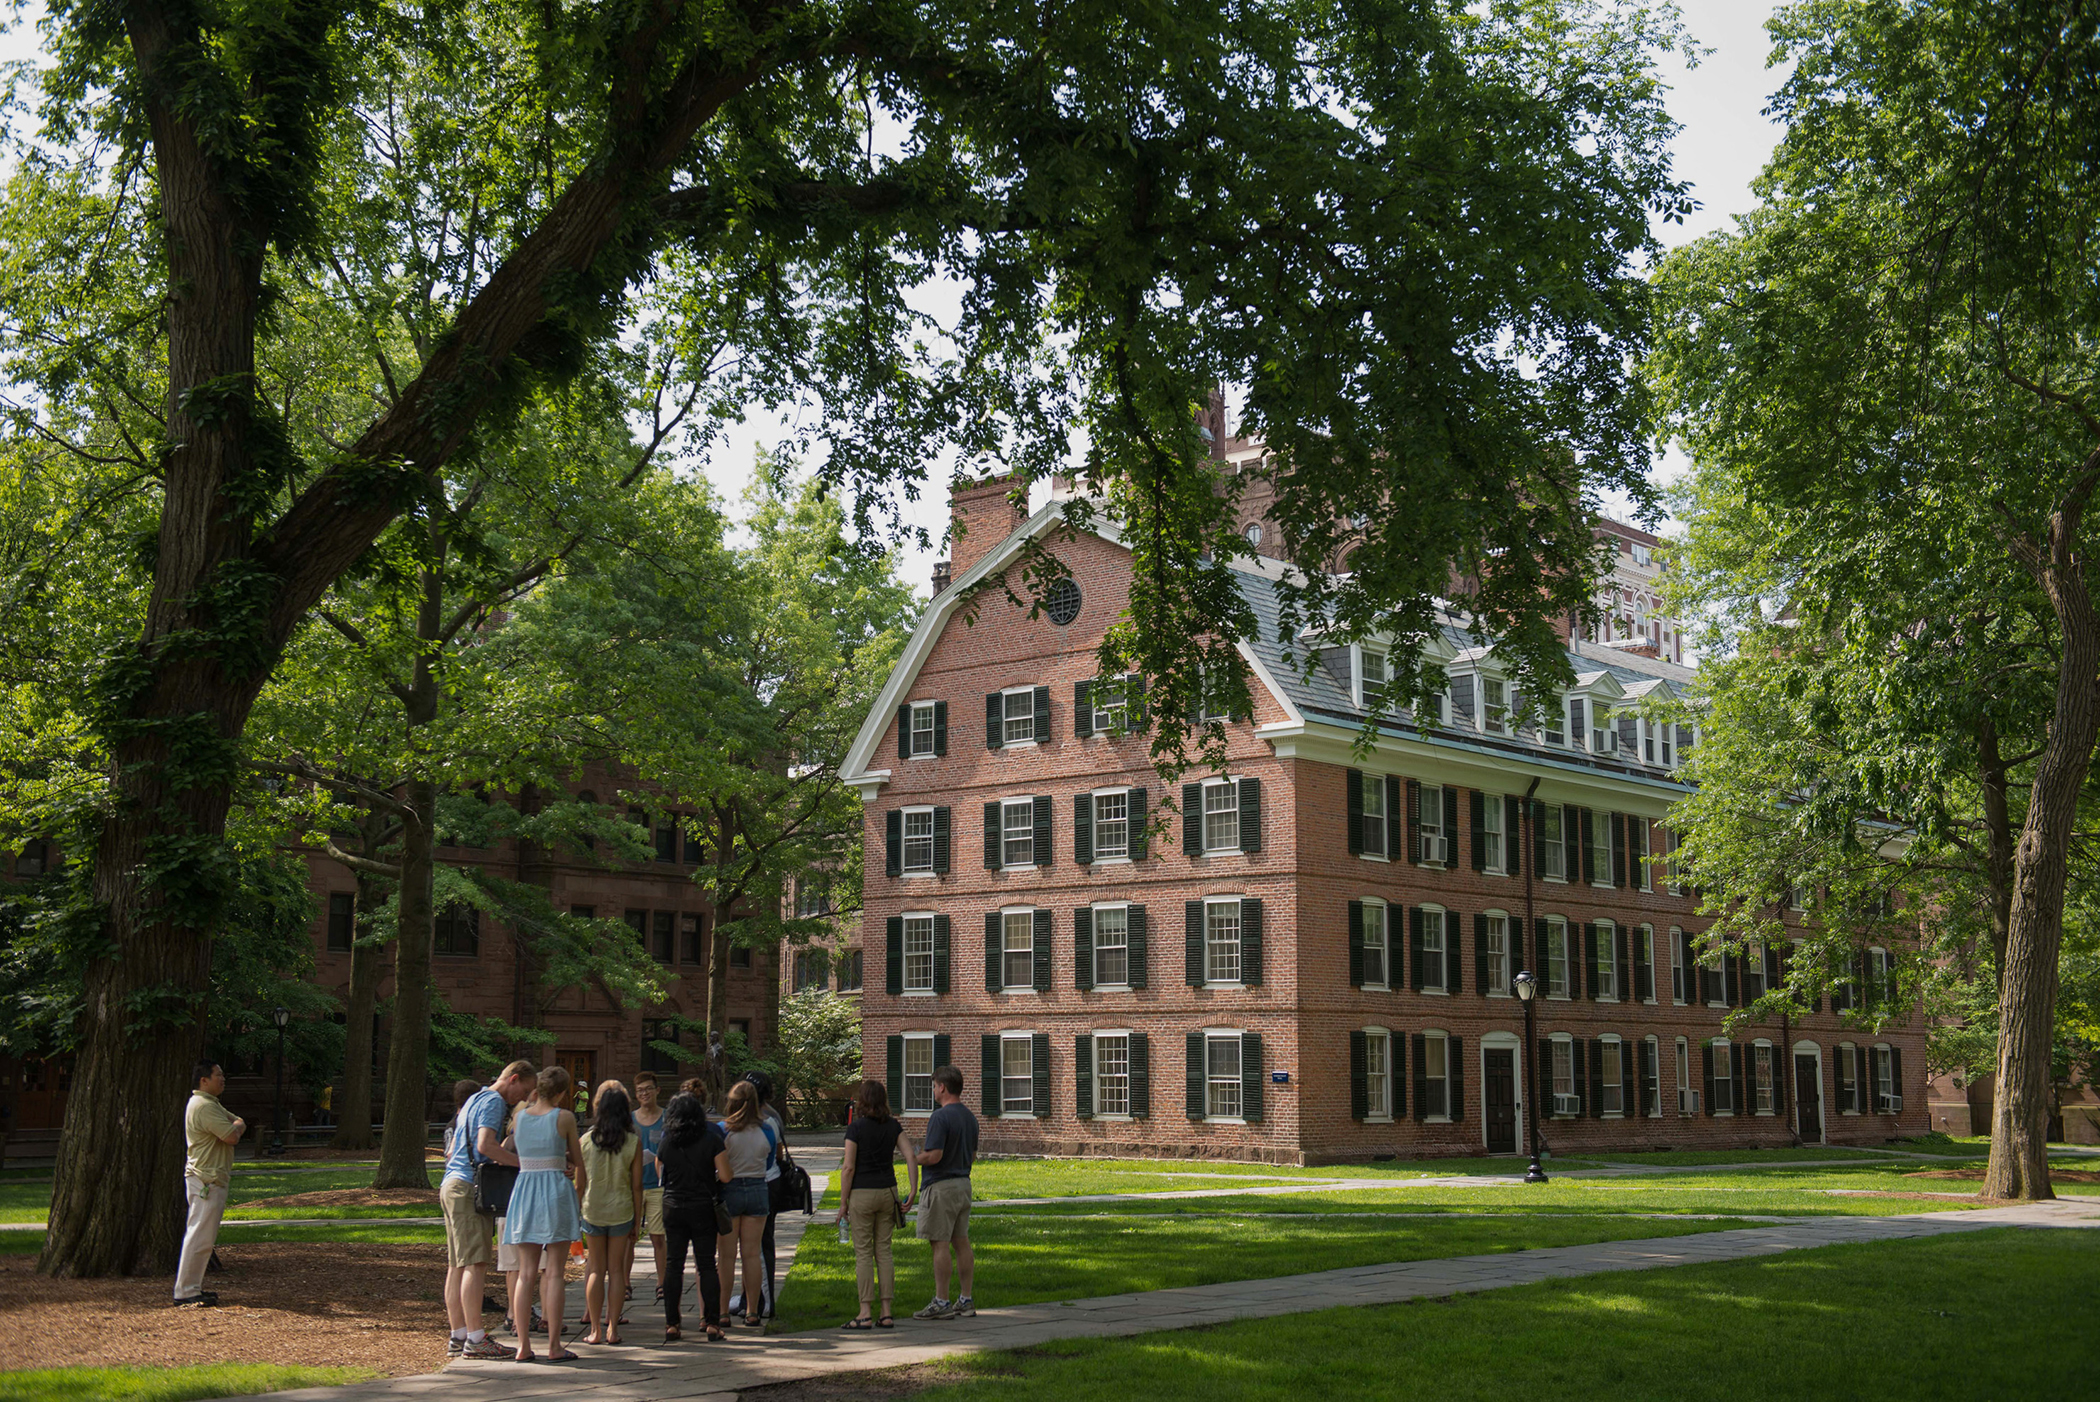 A tour group makes a stop at Connecticut Hall on the Yale University campus in New Haven, Connecticut, U.S., on Friday, June 12, 2015. Yale University is an educational institute that offers undergraduate degree programs in art, law, engineering, medicine, and nursing as well as graduate level programs.